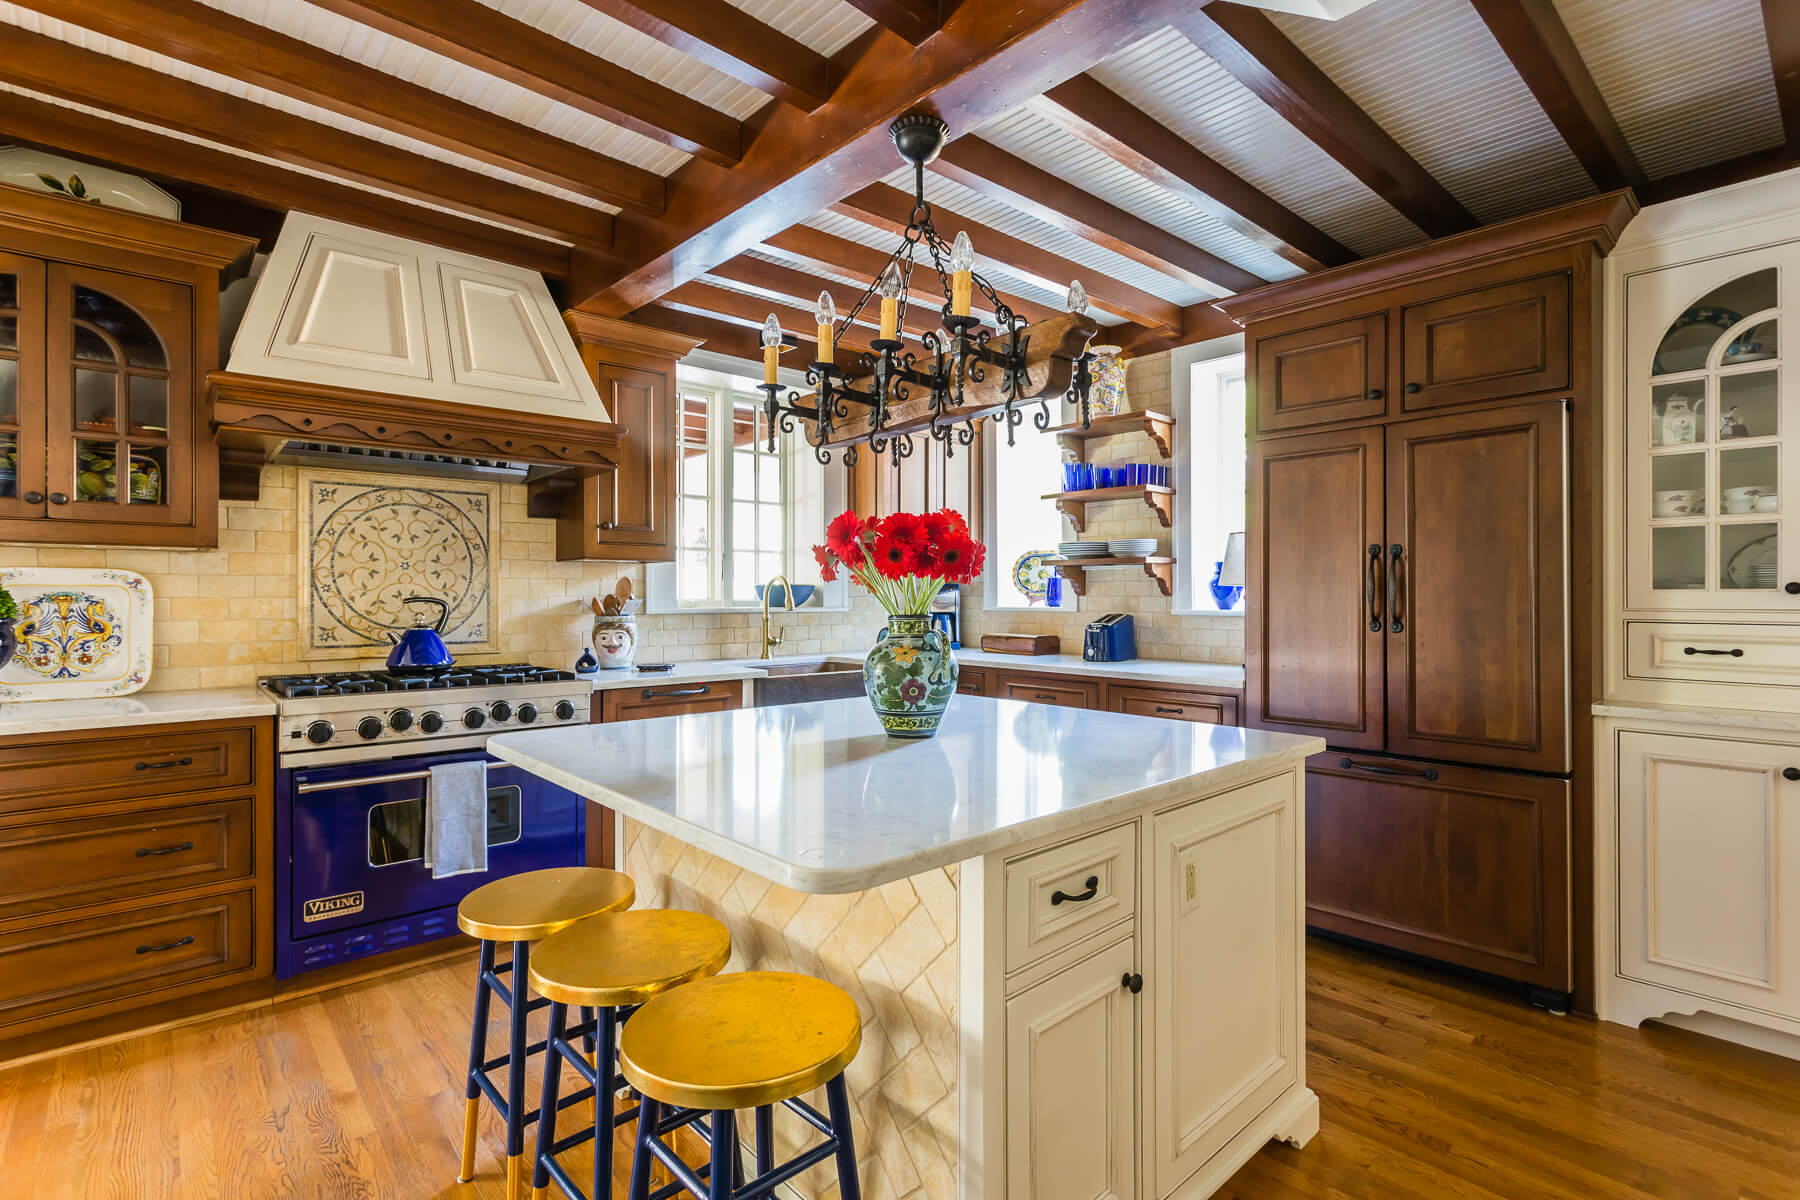 Spanish Kitchen Wood Exposed Beams Cobalt Blue Viking Stove